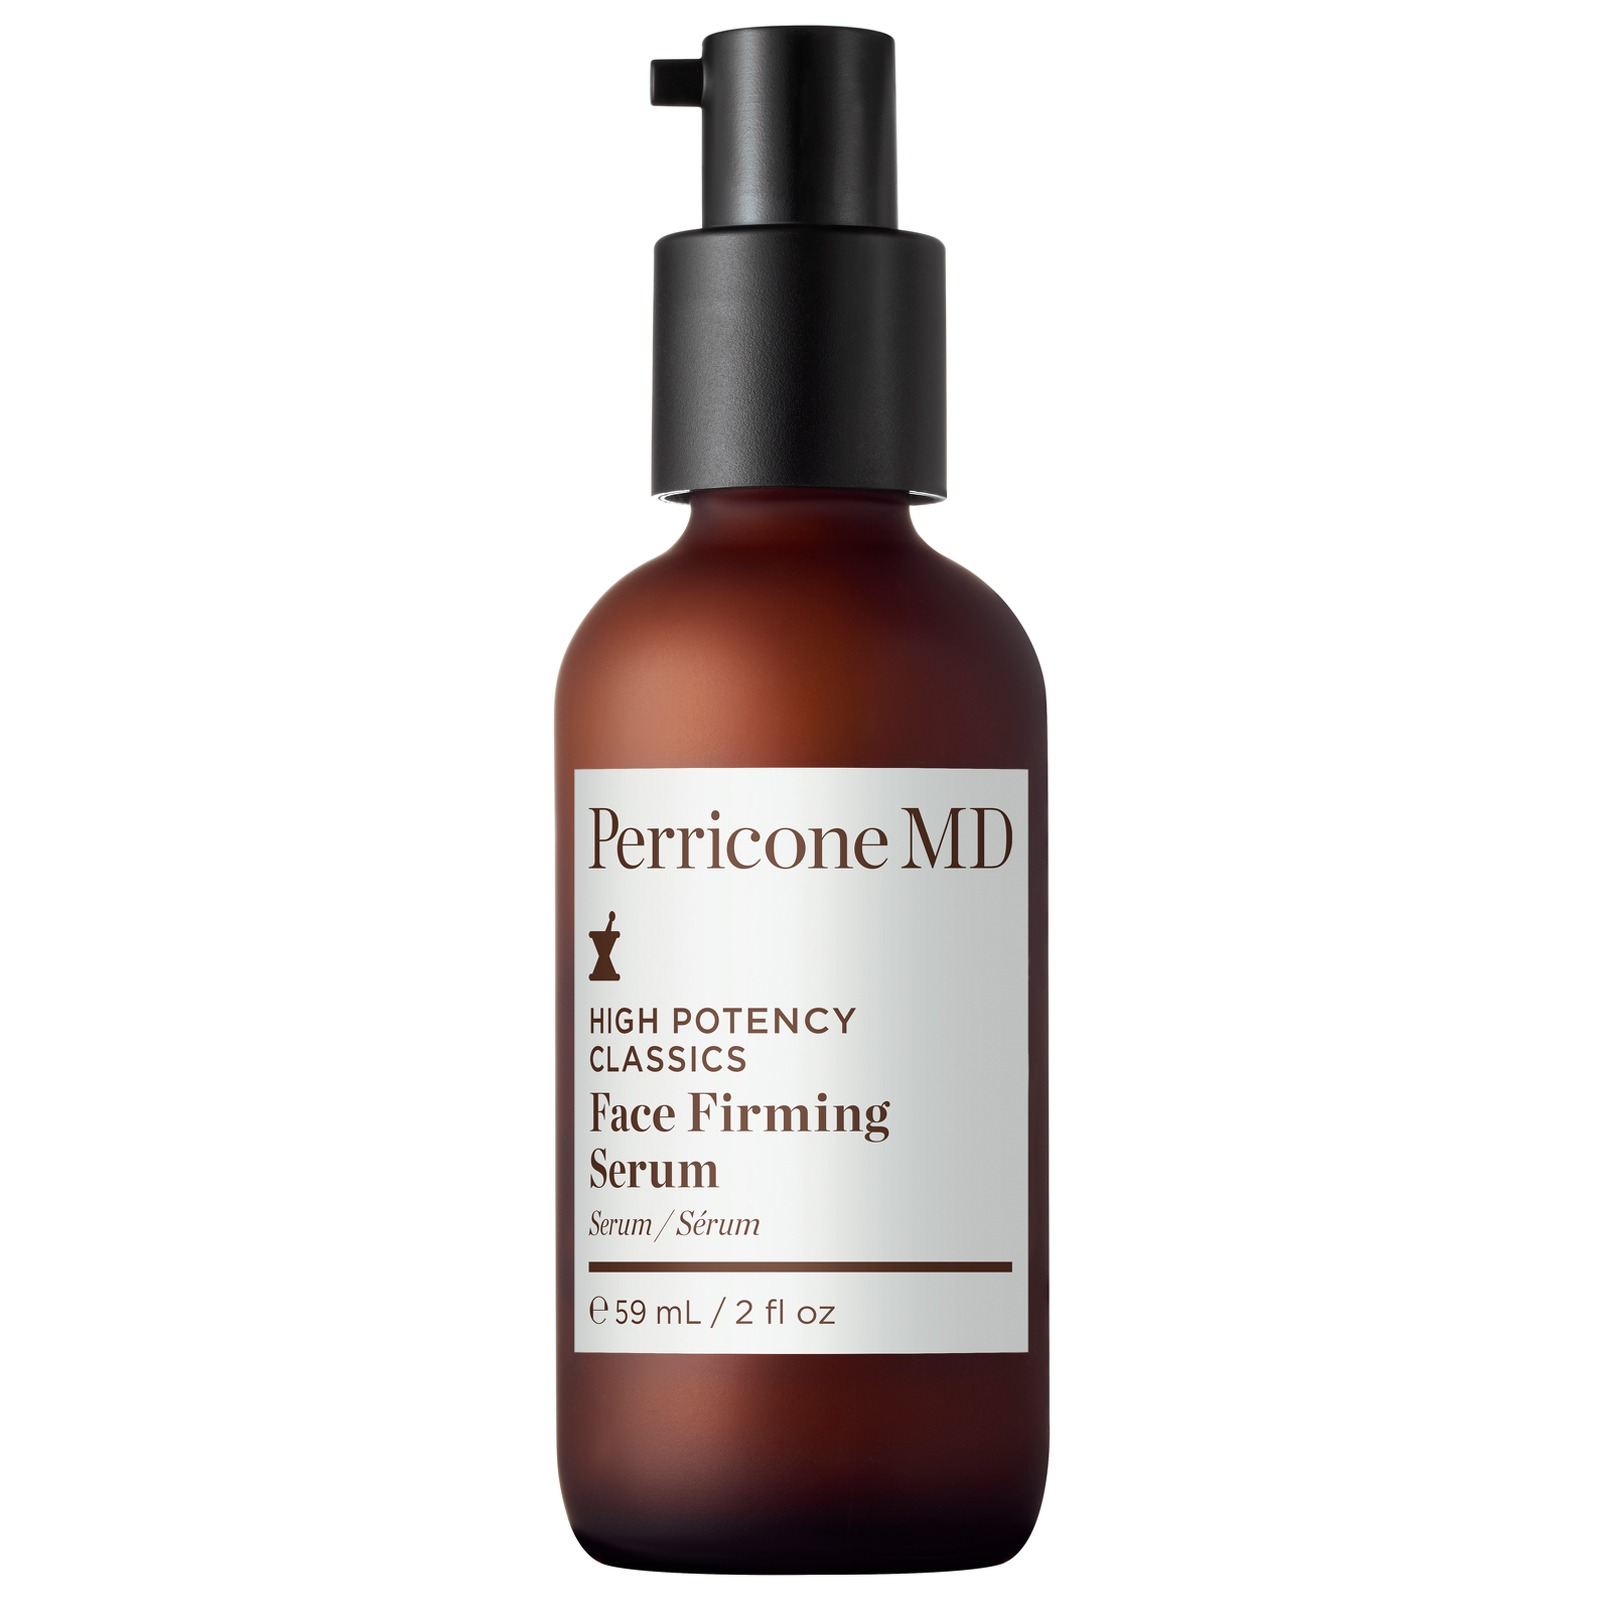 Perricone MD Treatments High Potency Classics Face Firming Serum 59ml / 2 fl.oz.